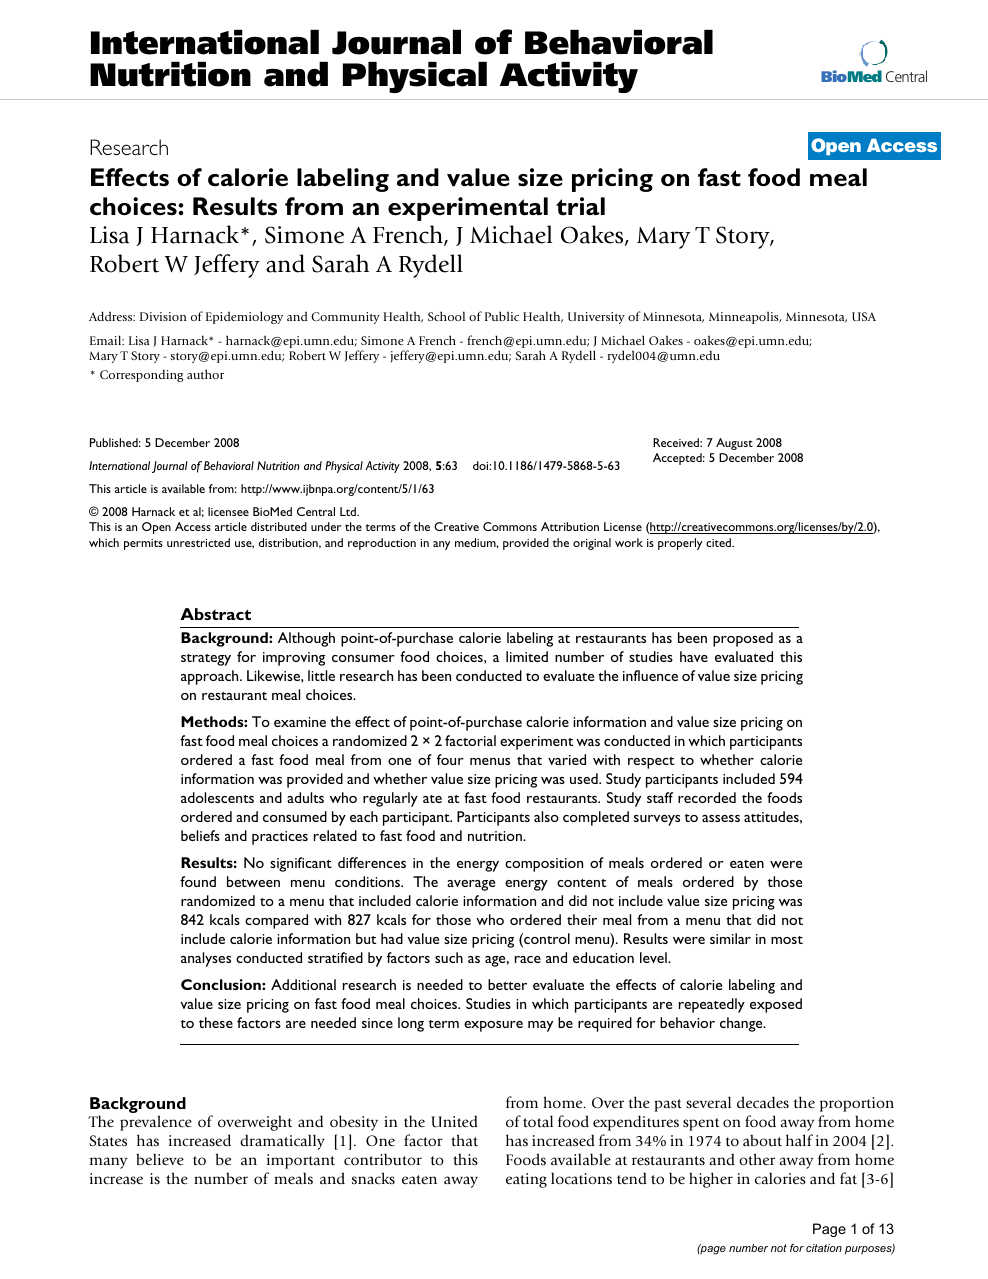 Effects of calorie labeling and value size pricing on fast food meal